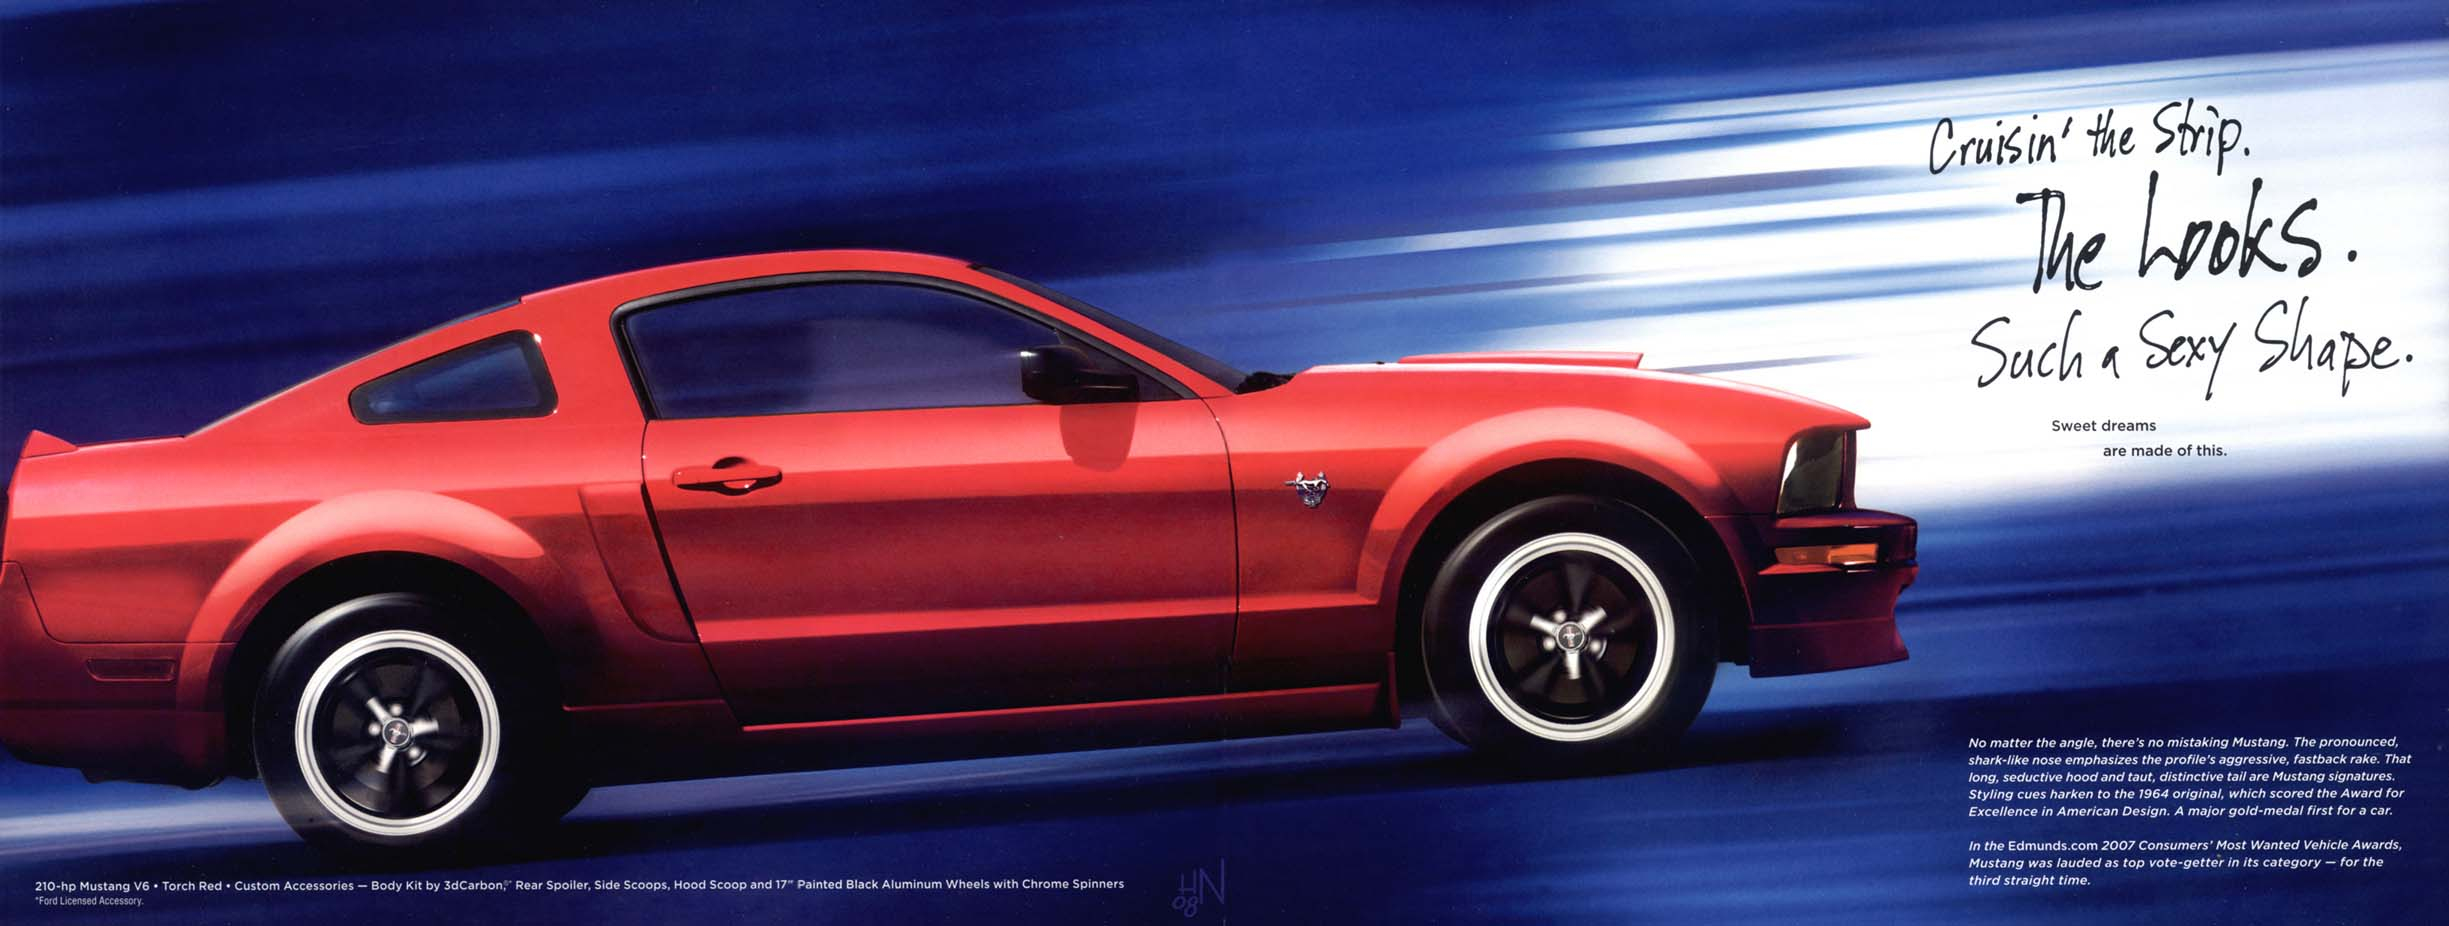 2009 Ford Mustang Brochure 1964 Howard Nourse From The Us Contributed These Scans